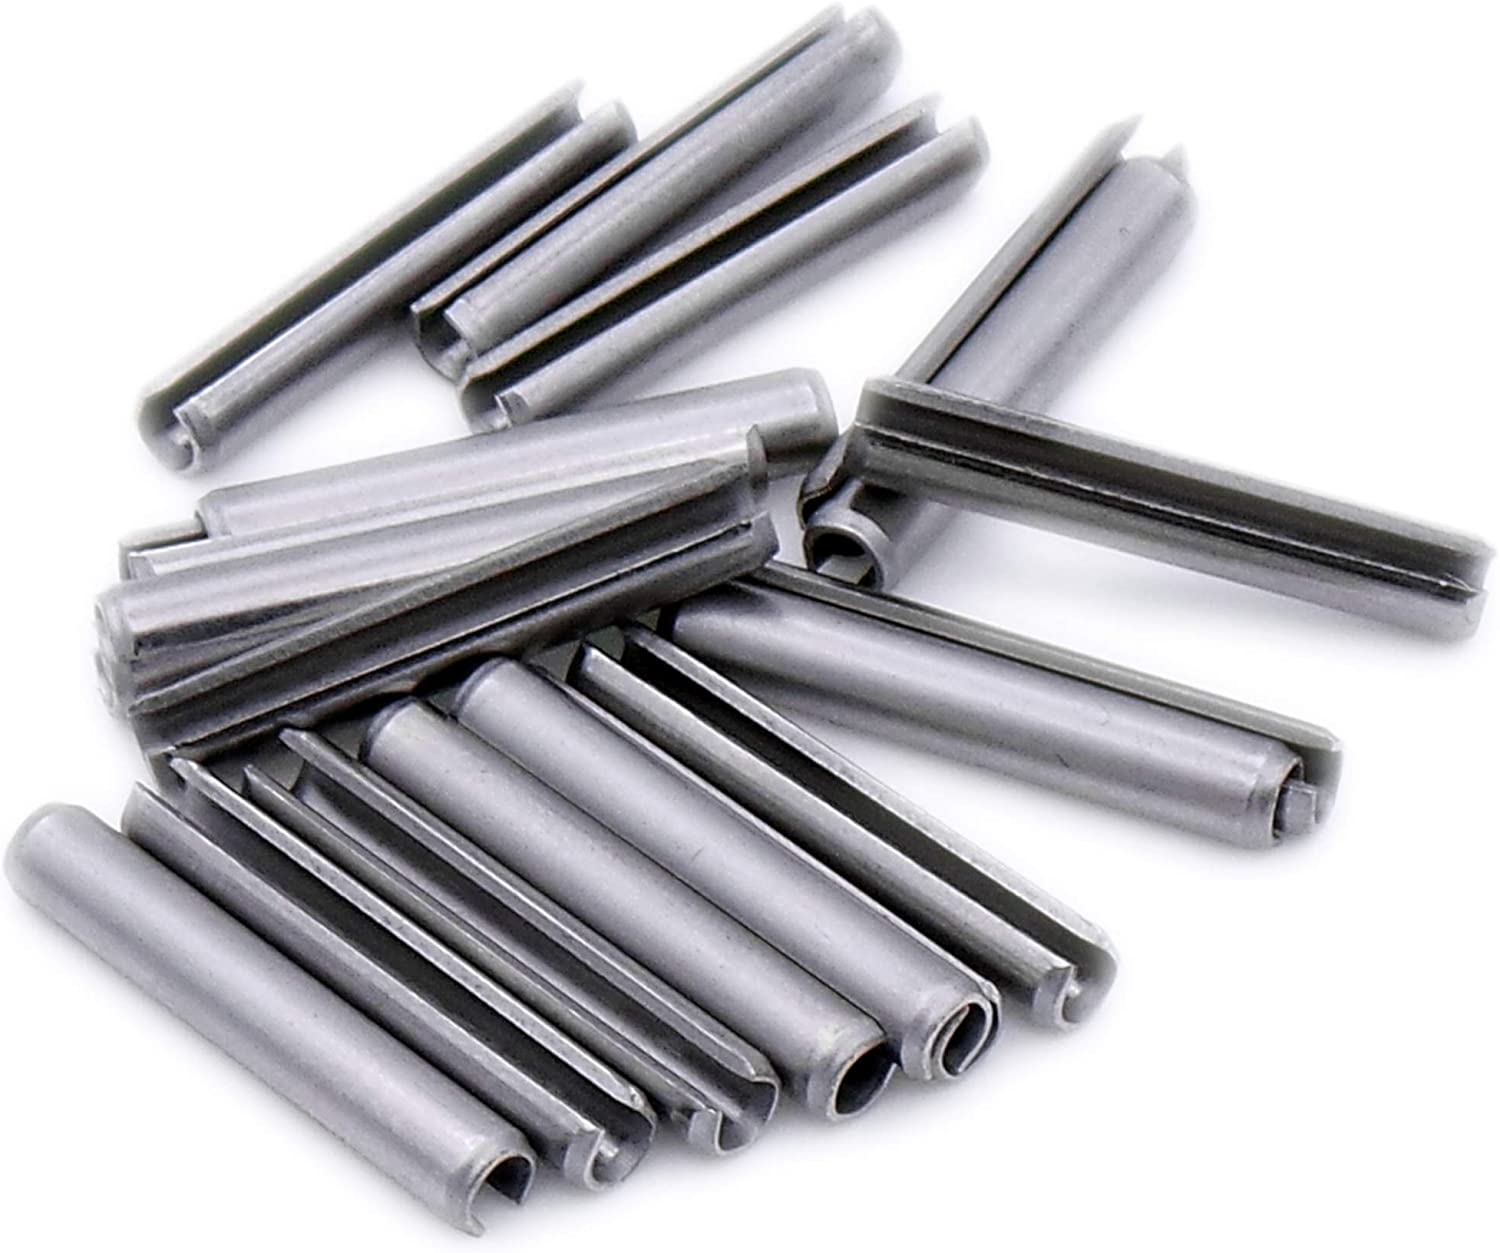 D3.5 Heavy Pack of 20 Slotted Spring Pin A1 3.5mm x 40mm - Stainless Steel